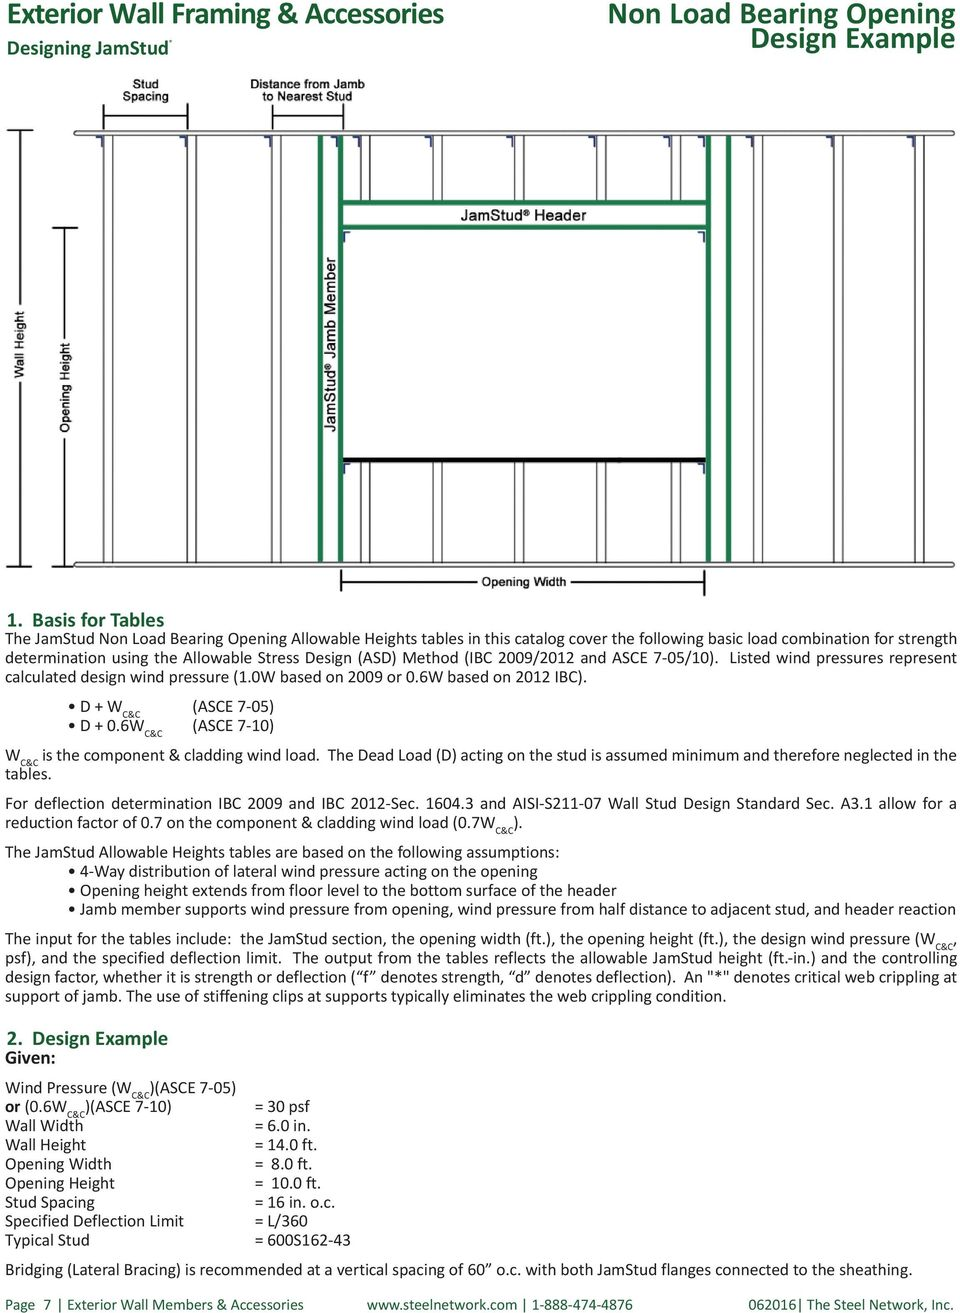 1 Exterior Wall Members & Accessories - PDF